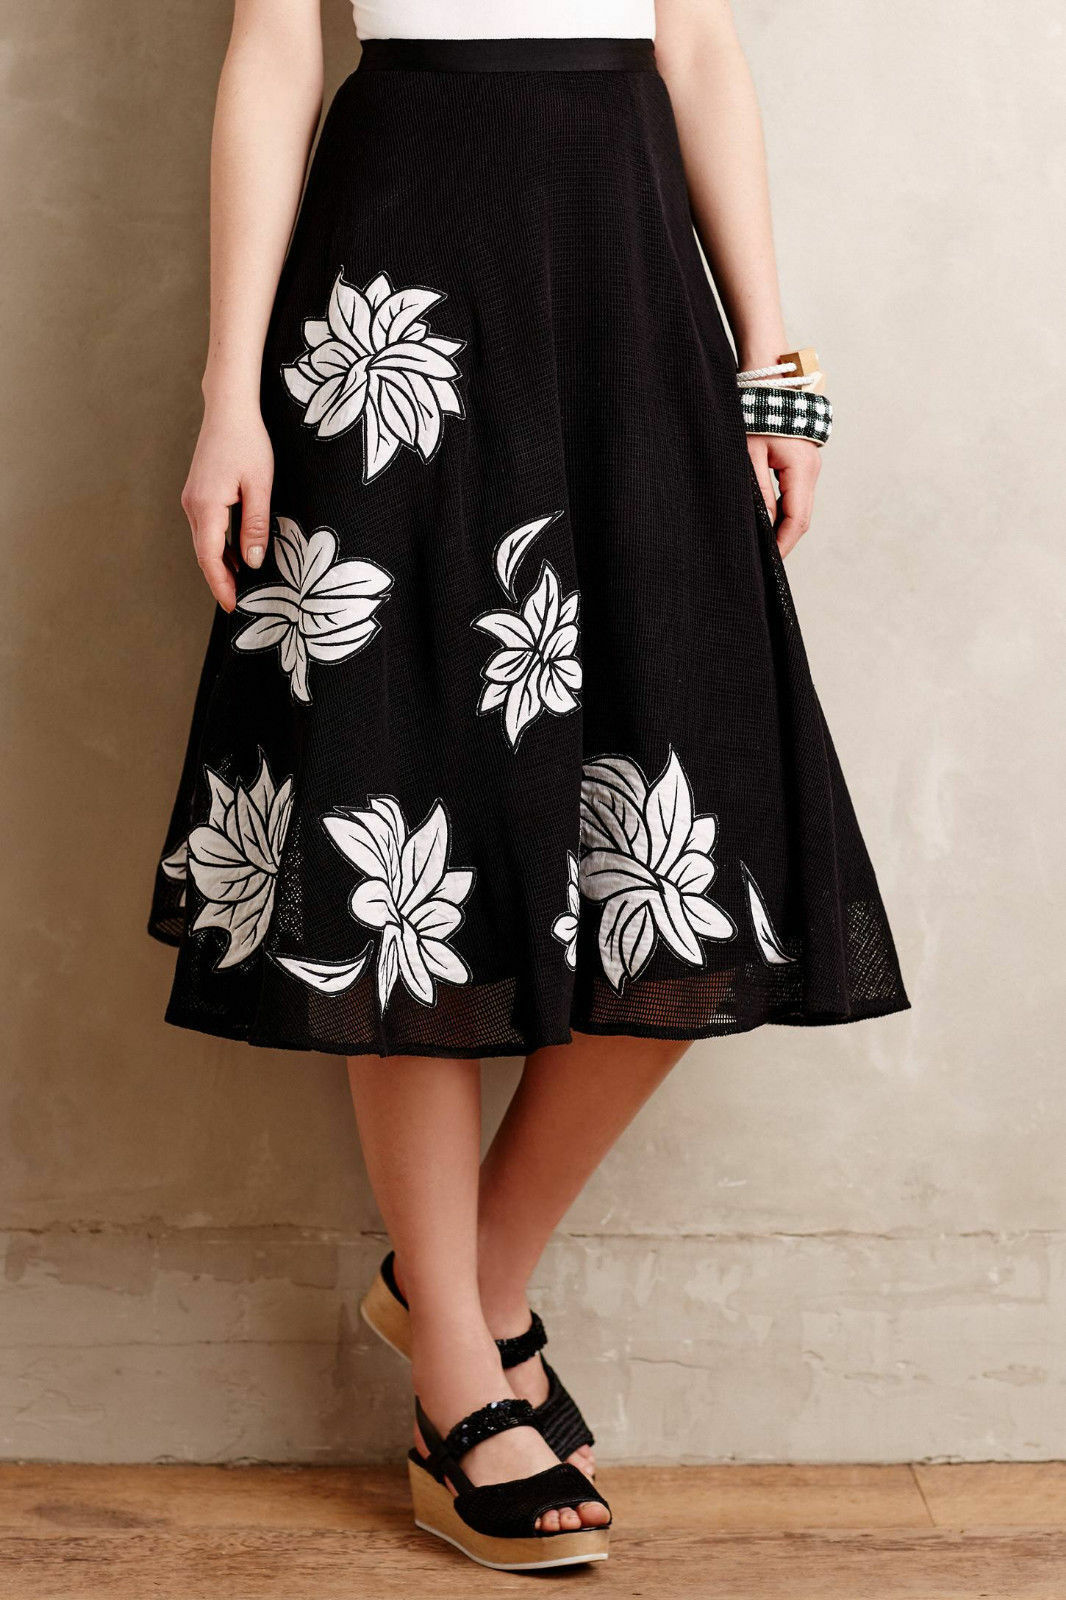 Anthropologie Skirt Contrabloom Petite Floral Full Midi By Tracy Reese 8P Petite